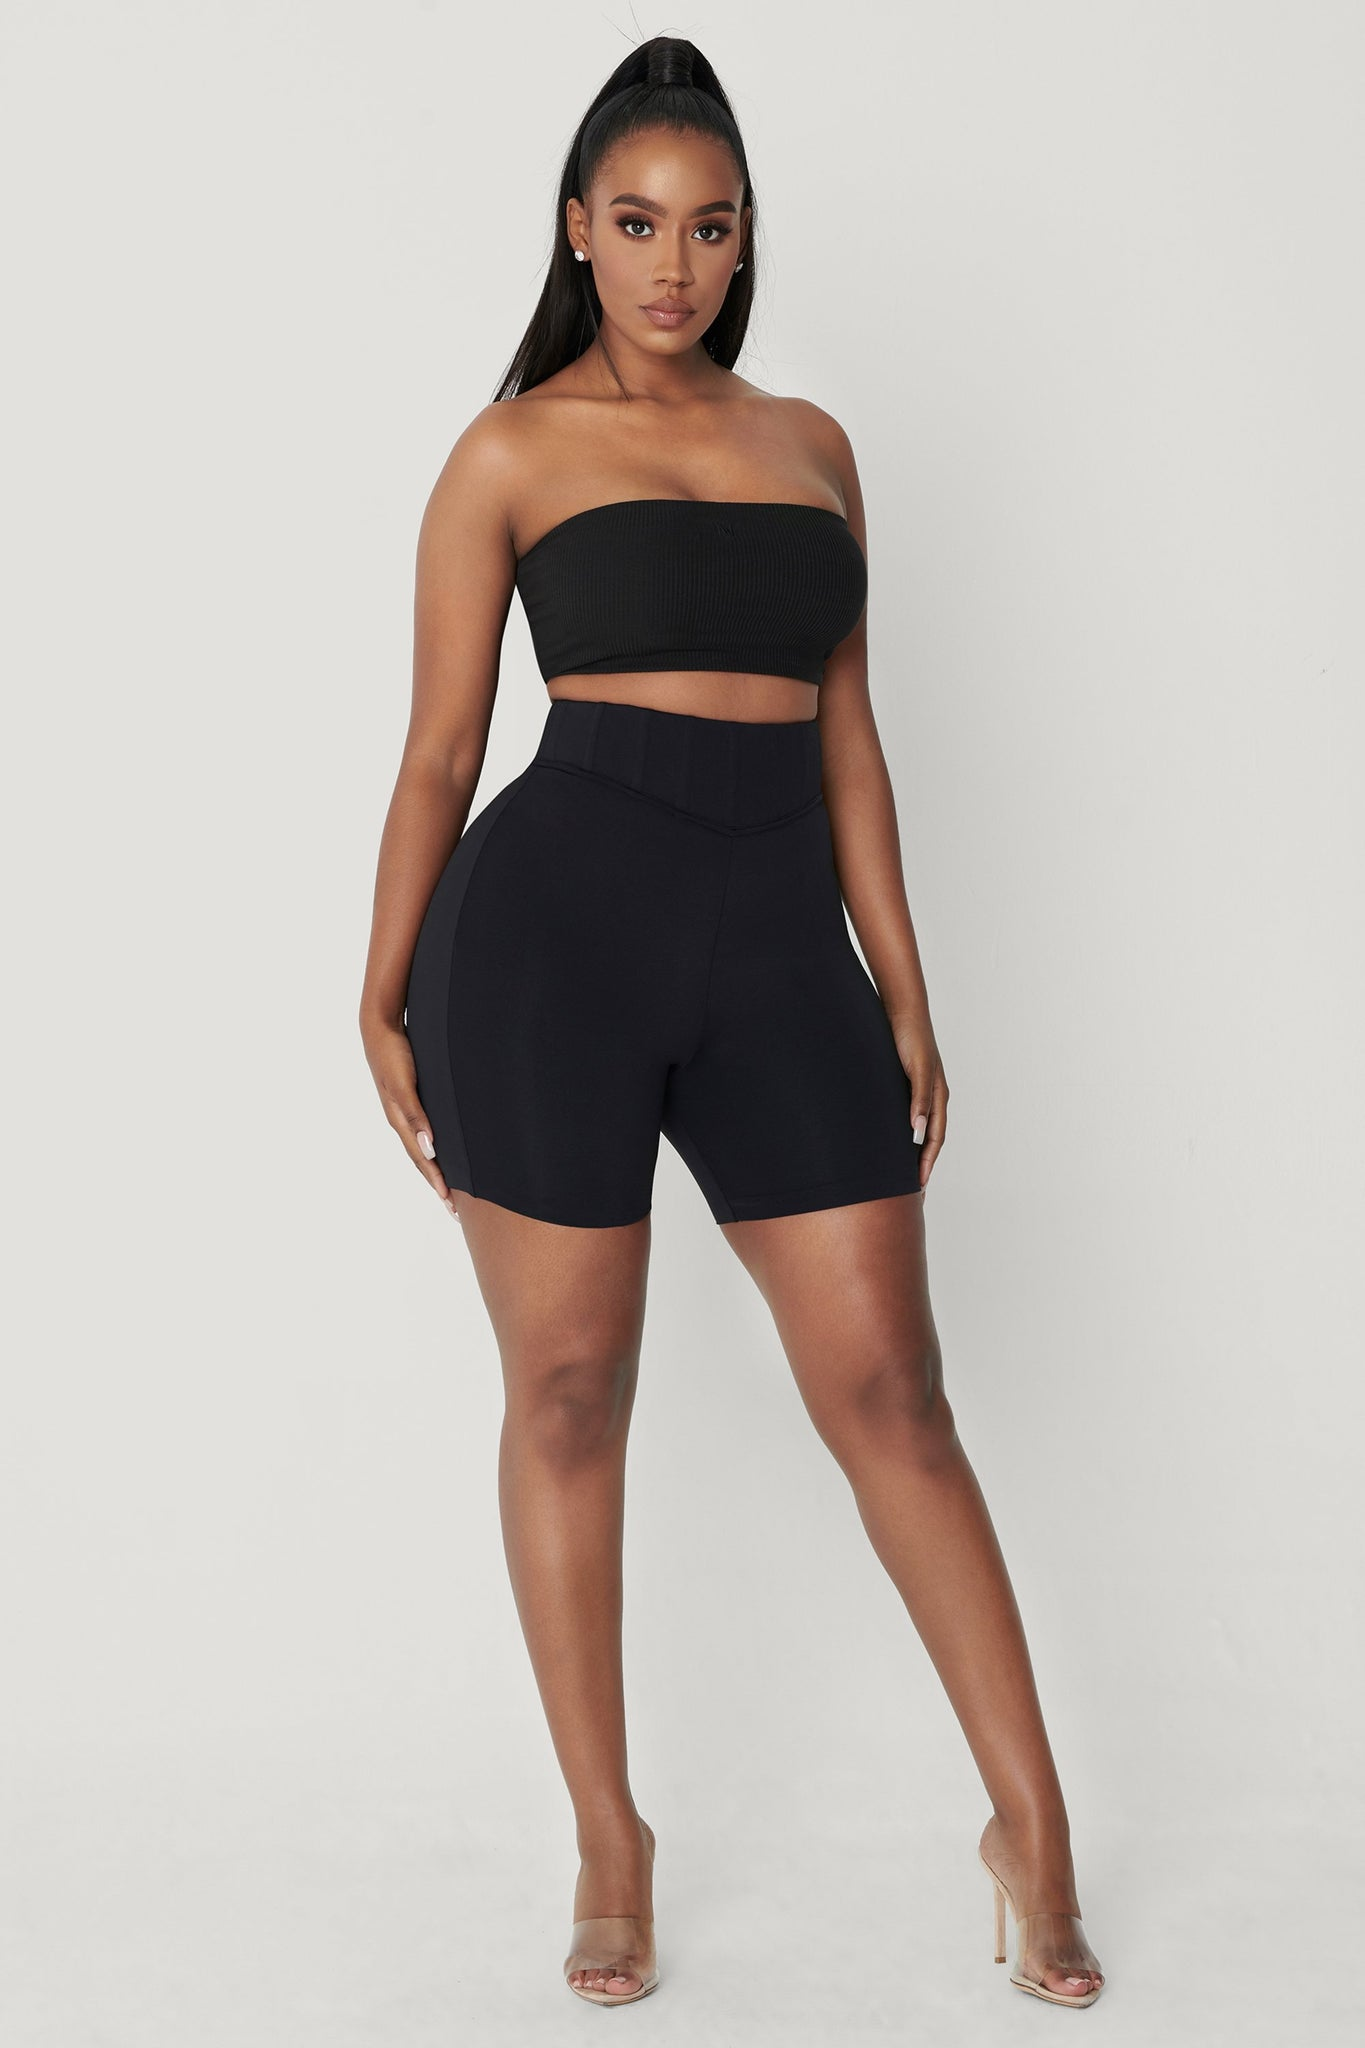 Chaya High Waisted Boned Bike Short - Black - MESHKI